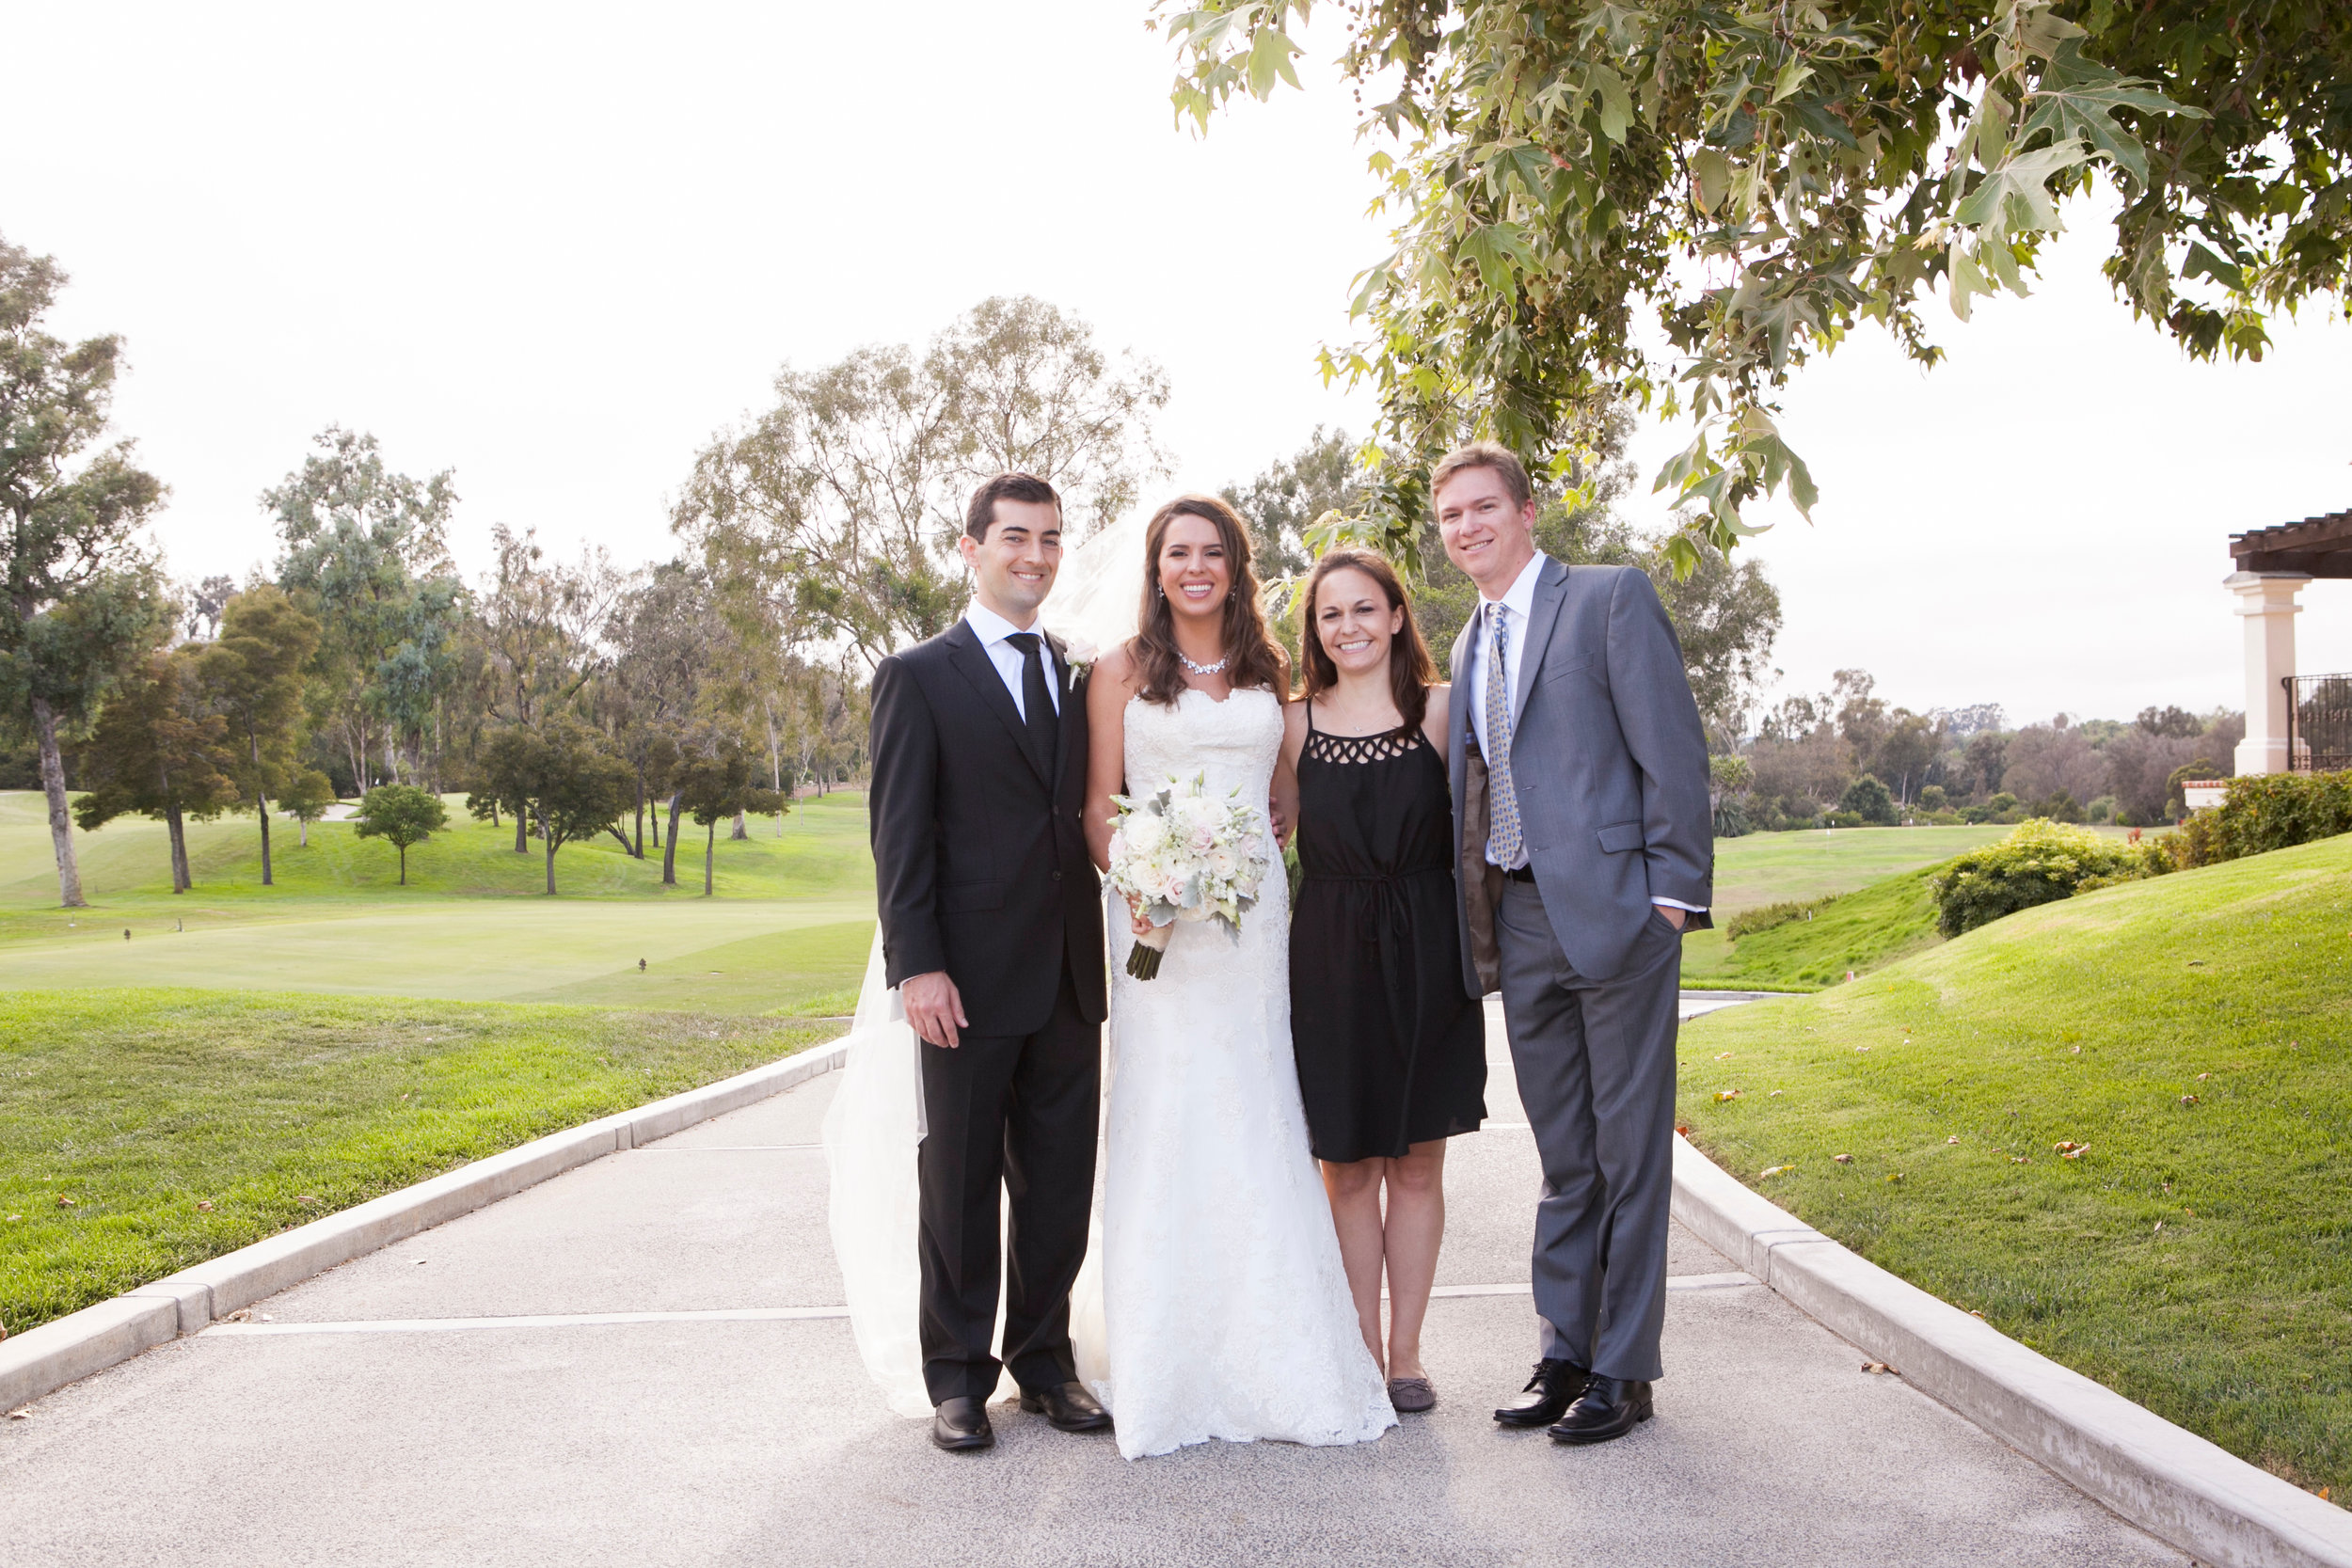 San Diego Wedding Videography, Rancho Santa Fe Golf Club, Lisa Hadley Studios, wedding videography